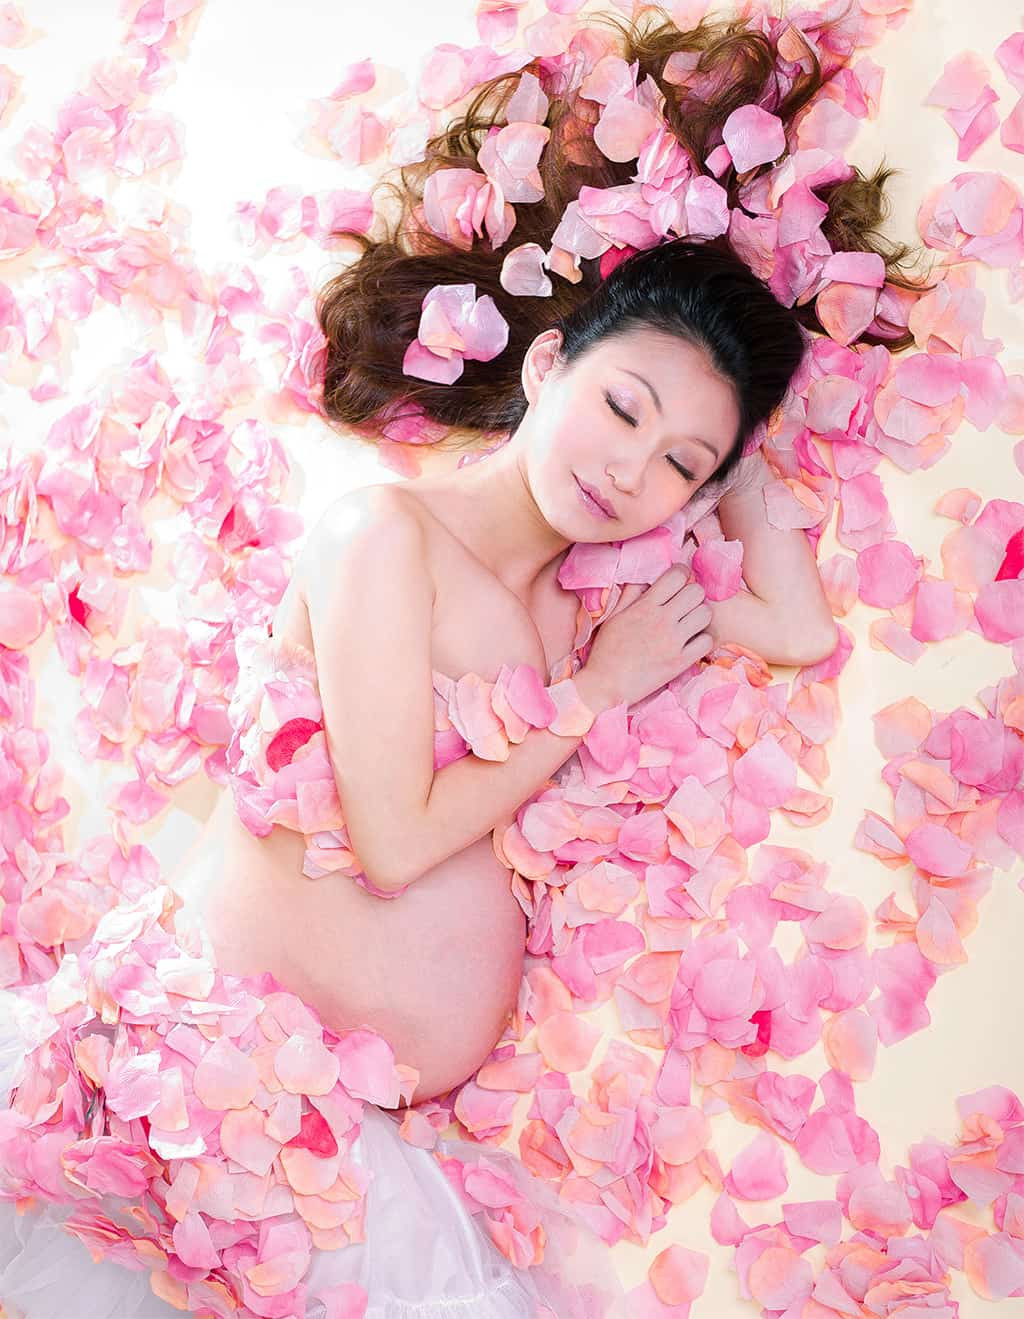 Photo Of A Pregnant Asian Woman Sleeping With Rose Petals All-Around Her